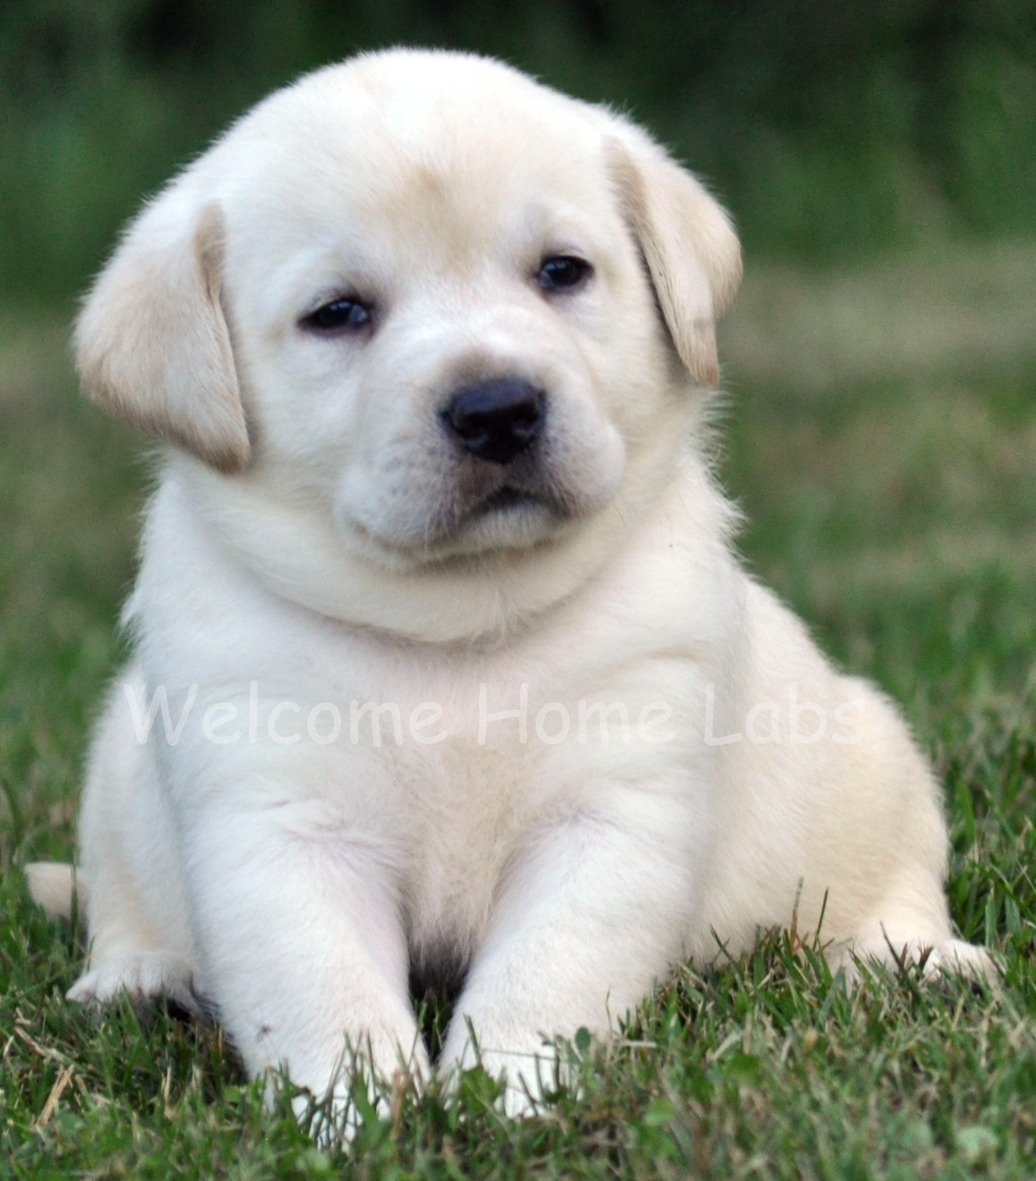 Labrador Puppies Wallpapers Posted By Christopher Walker